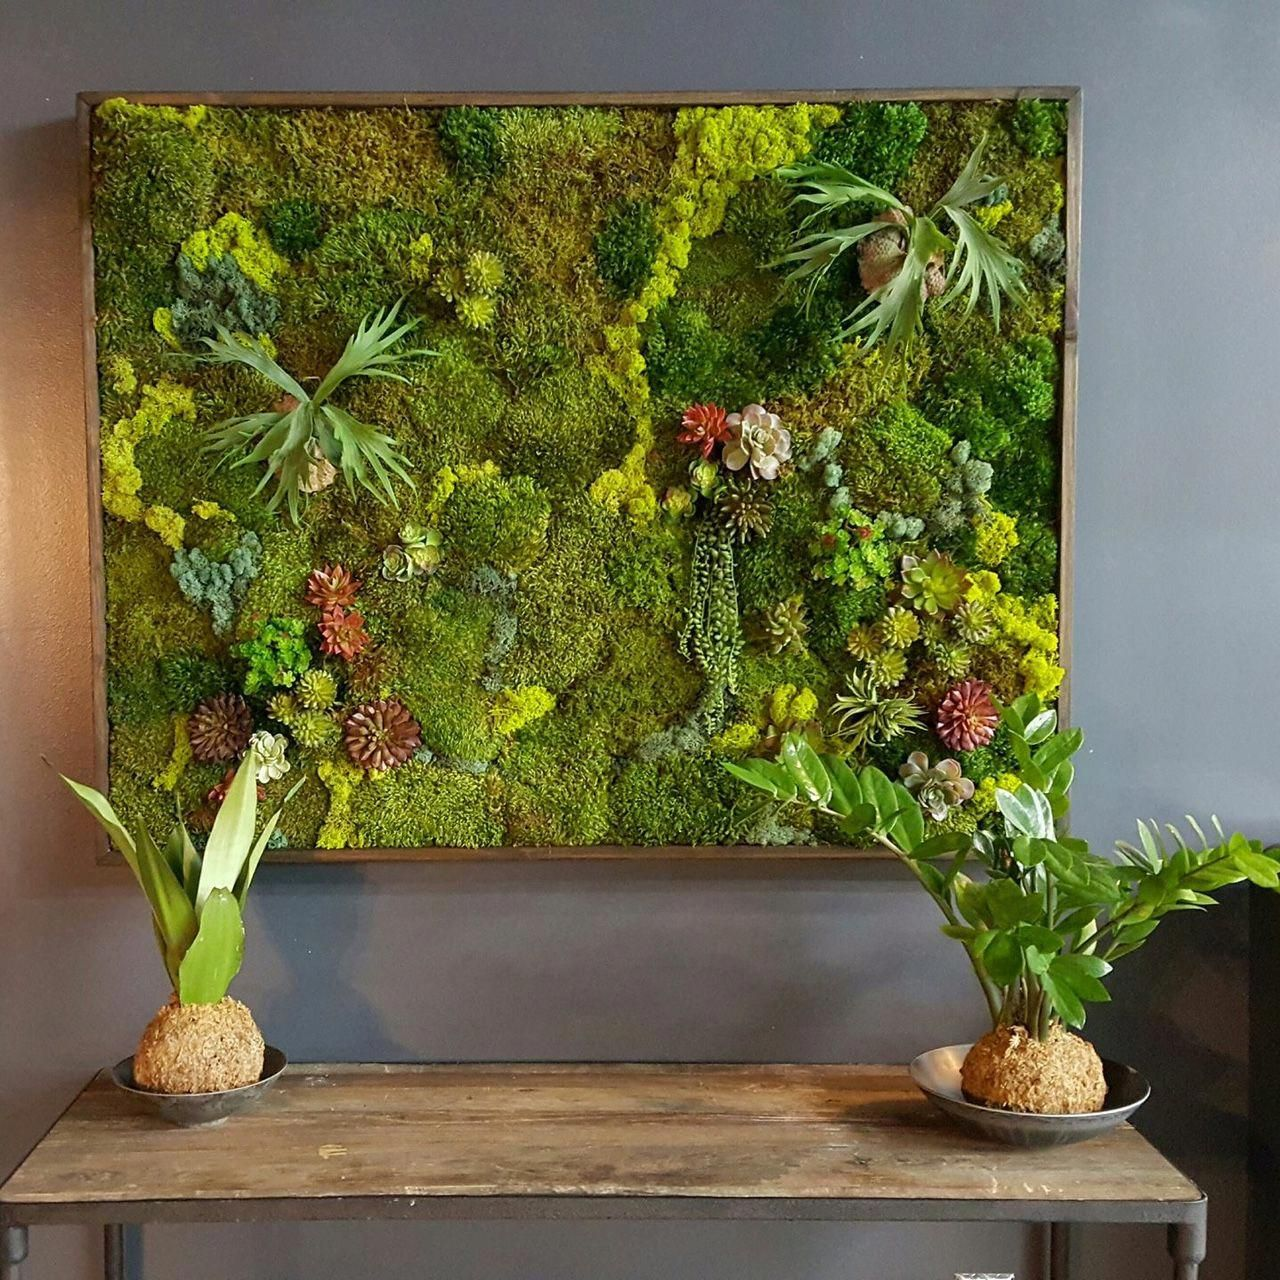 » Your Questions About Moss Walls Answered